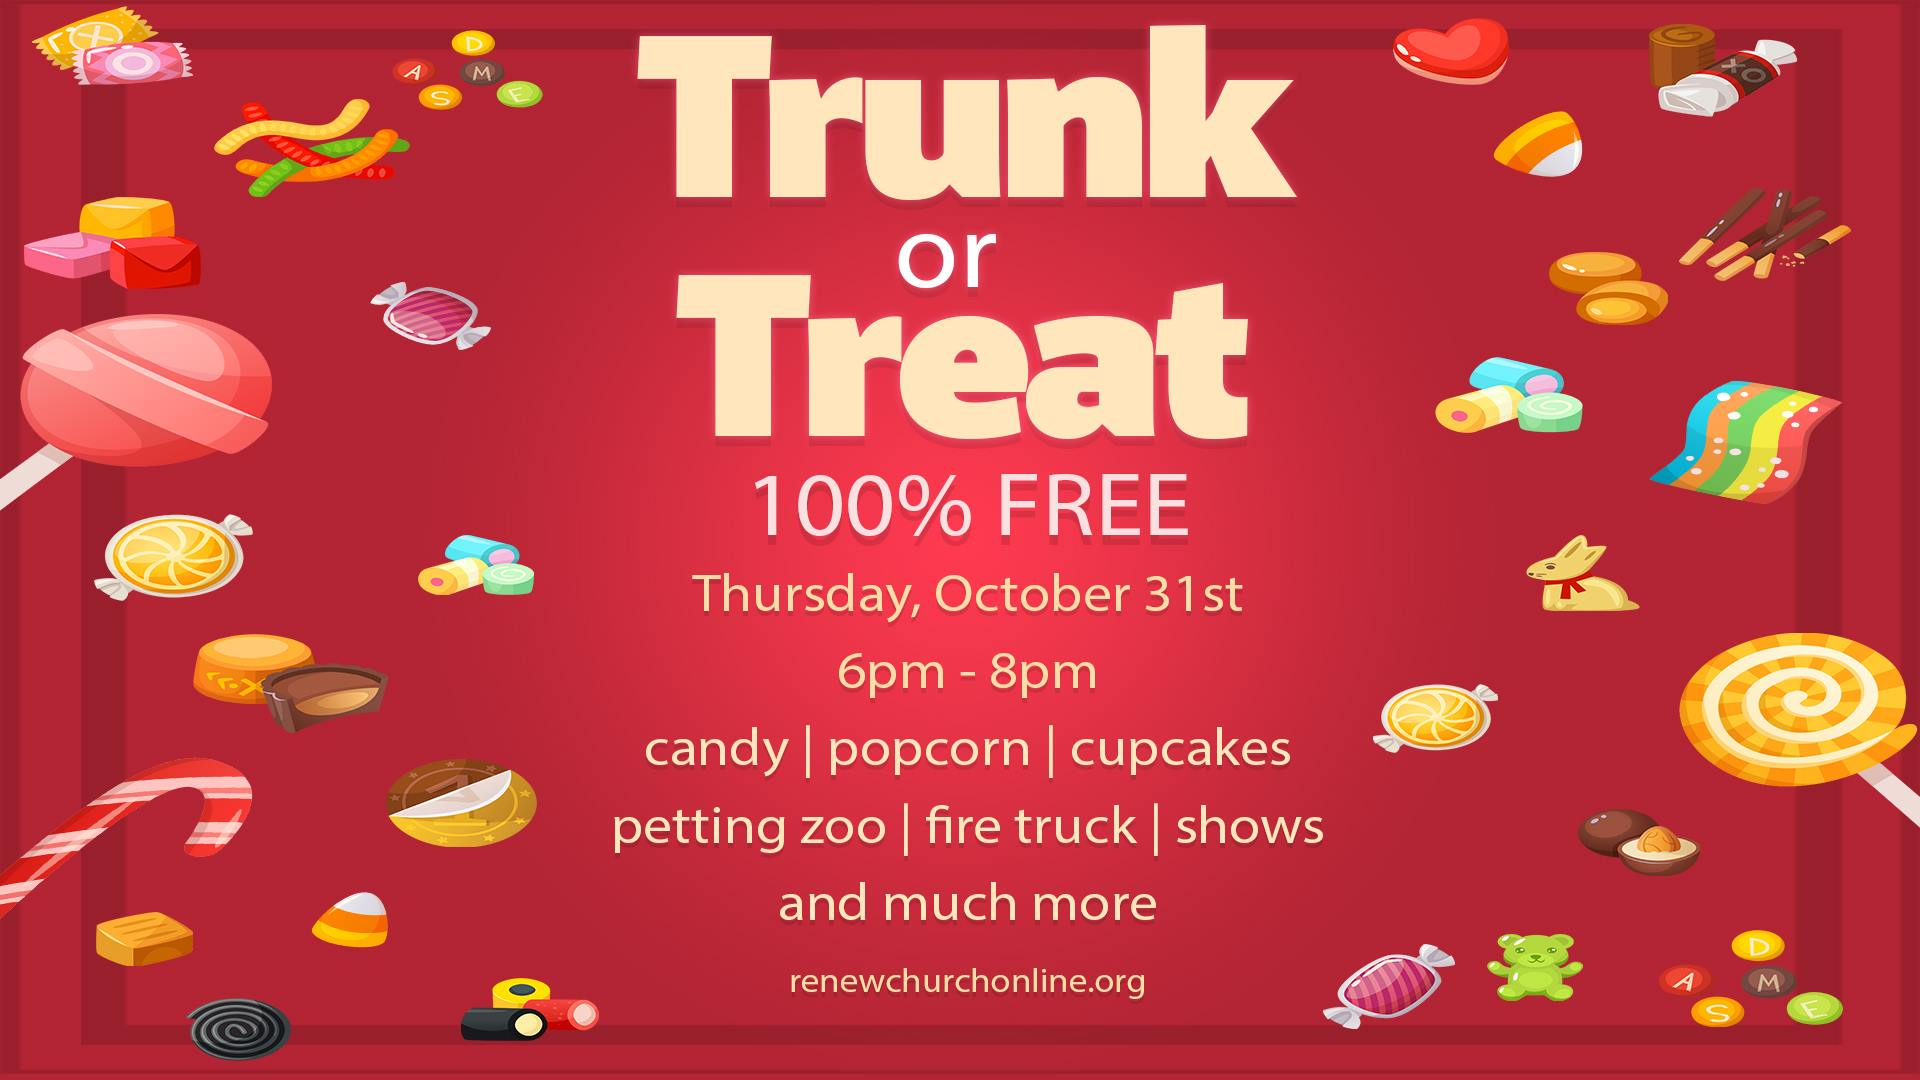 Trunk-or-Treat Baton Rouge